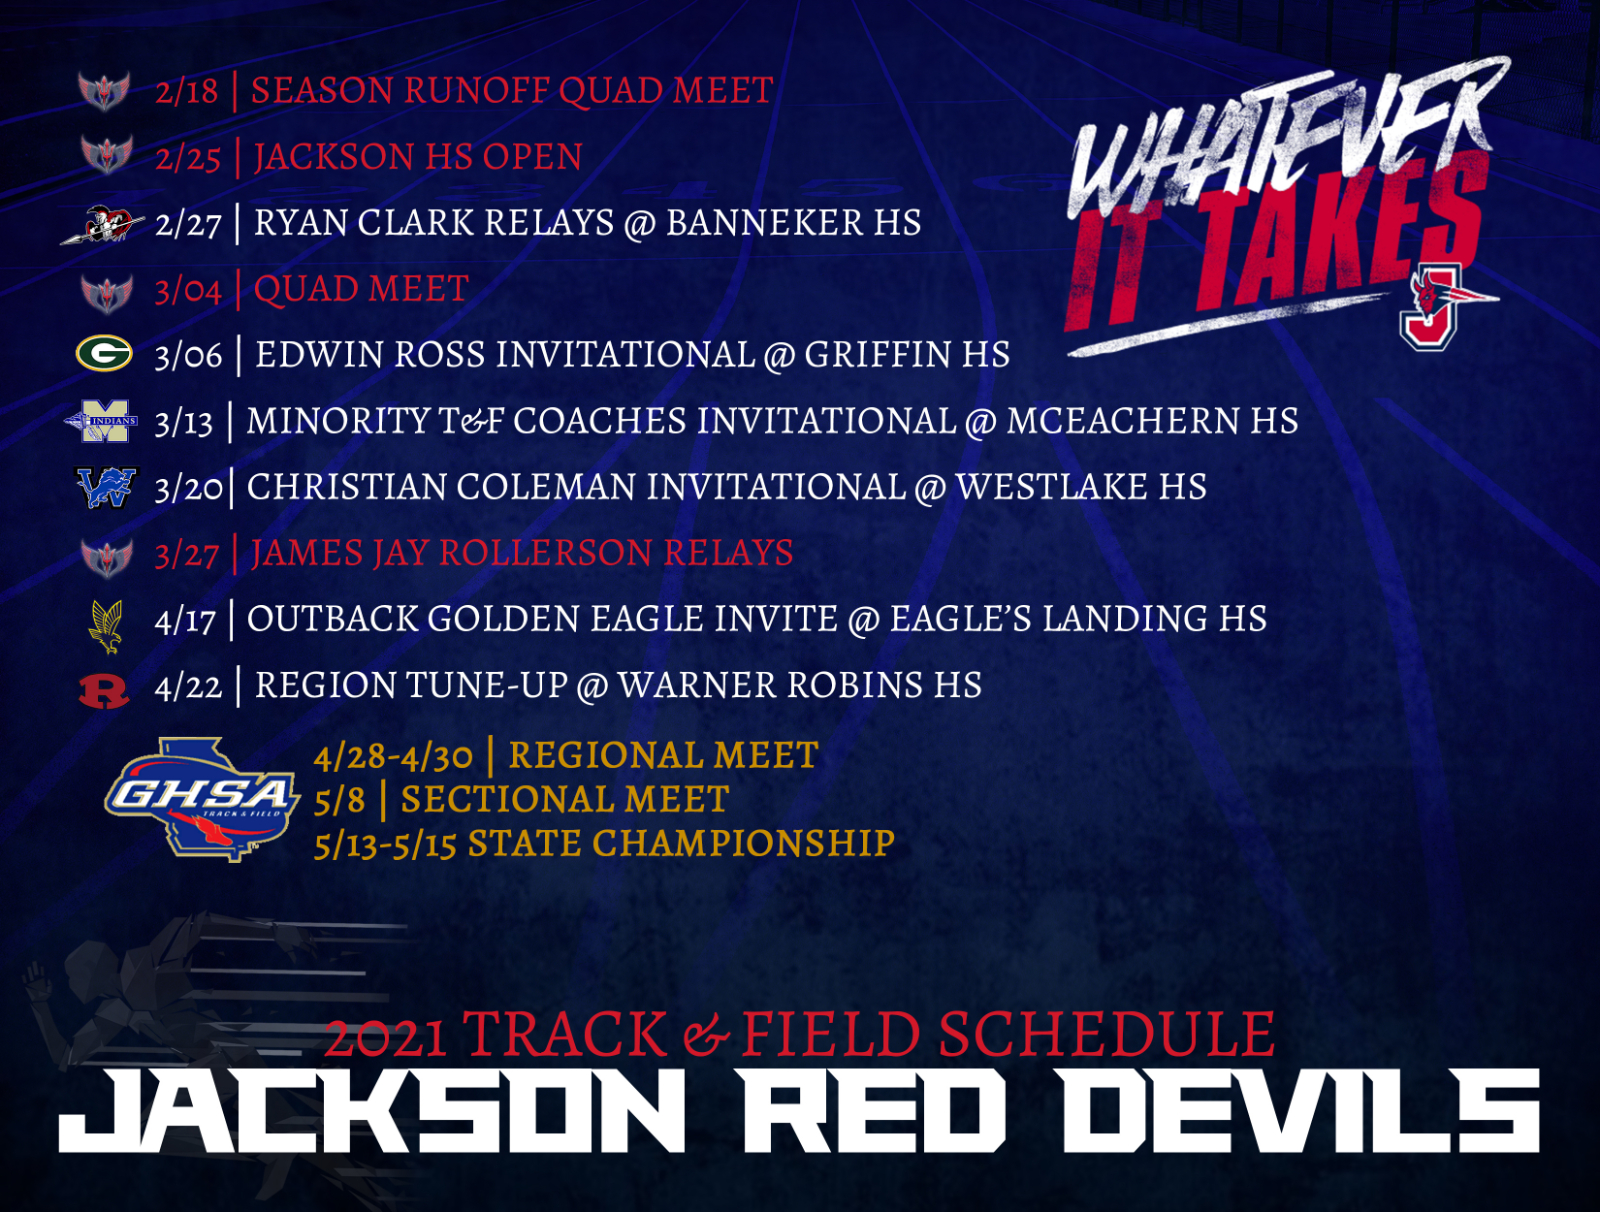 2021 Red Devils Track & Field Schedule